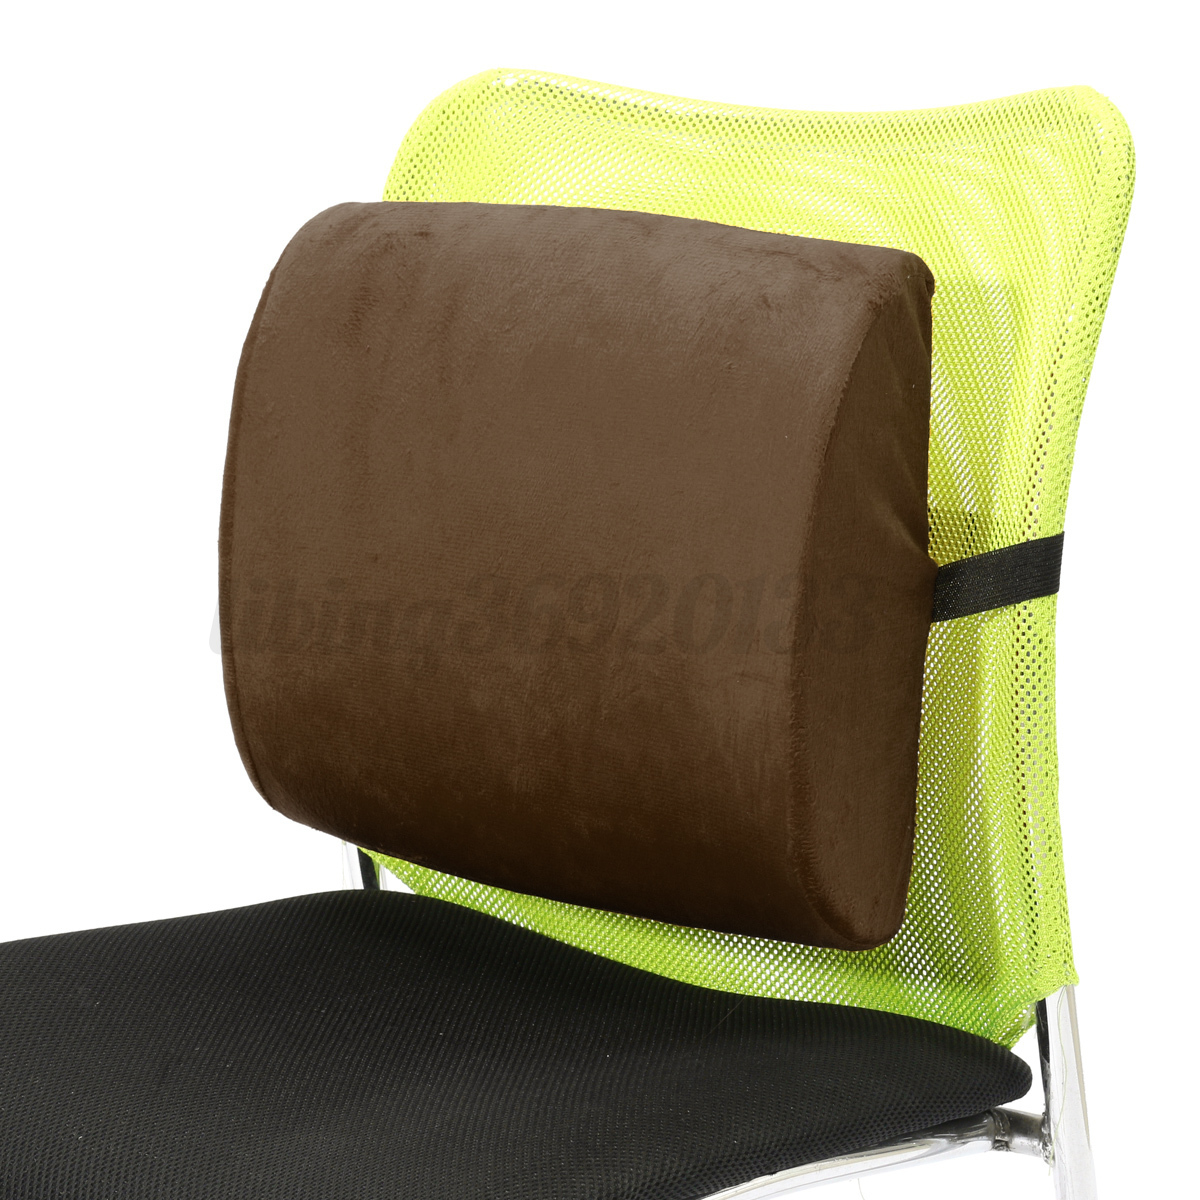 Memory Foam Lumbar Cushion Travel Pillow Car Flight Seat